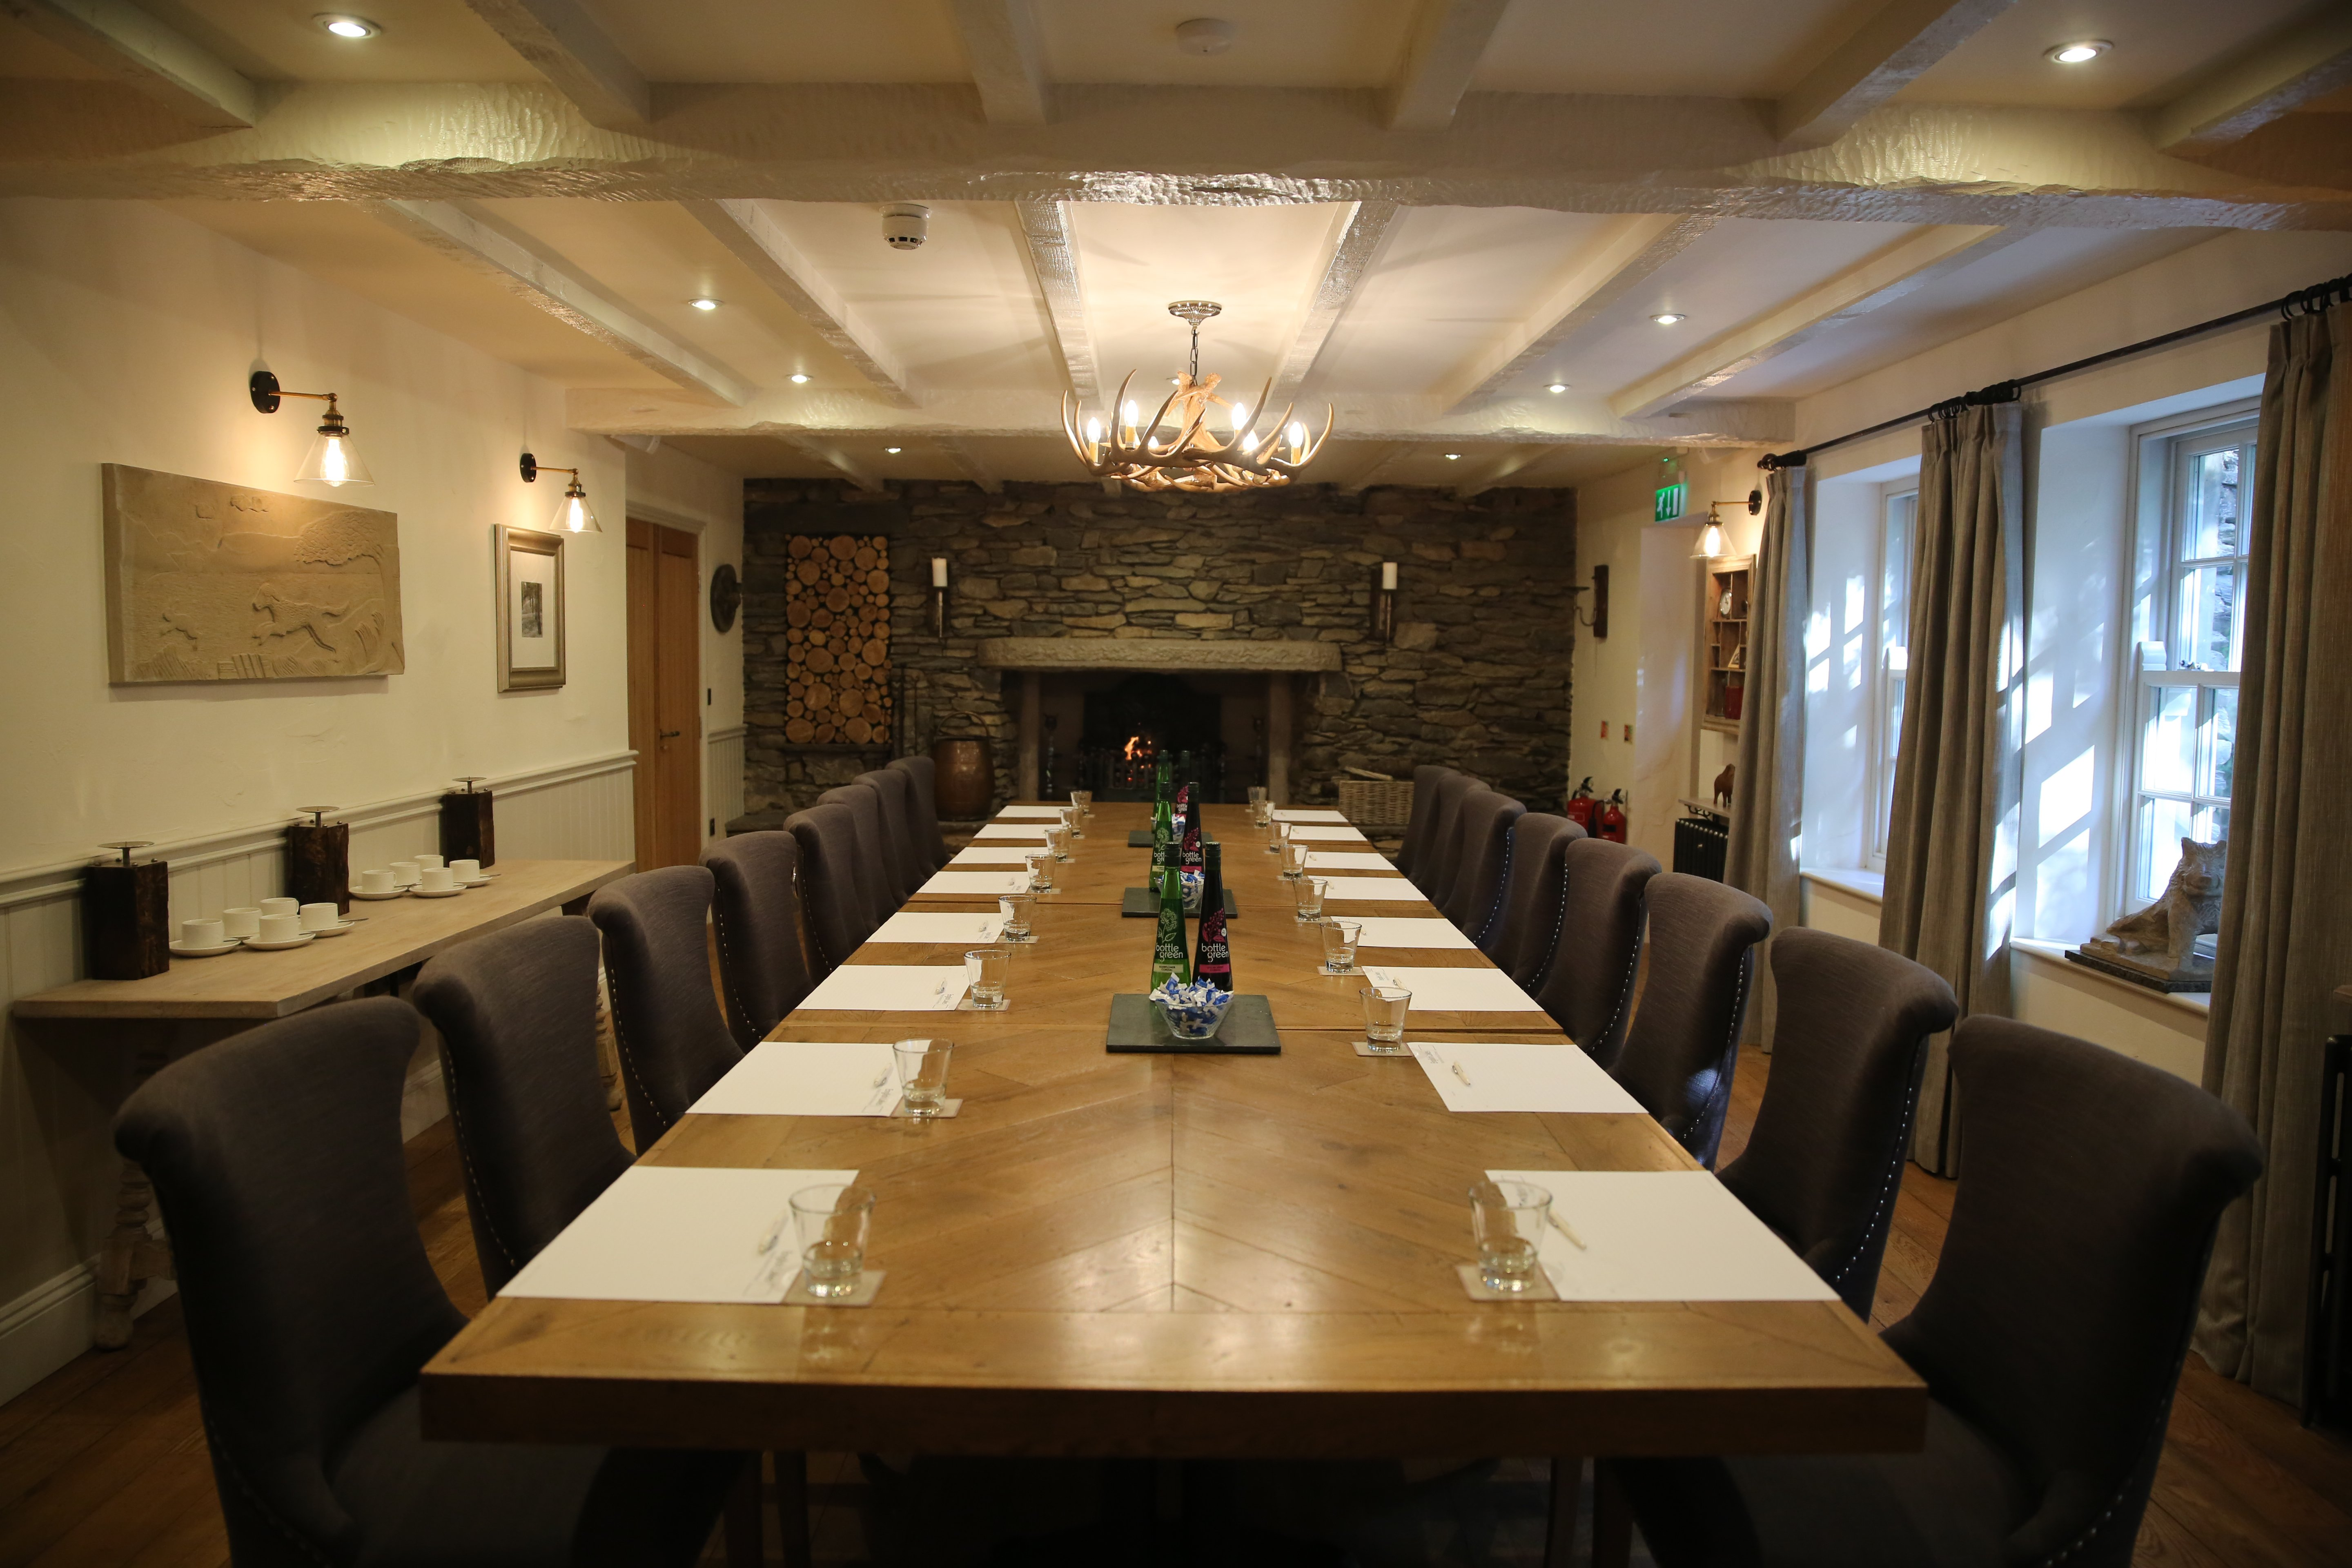 Undermillbeck Conference Room